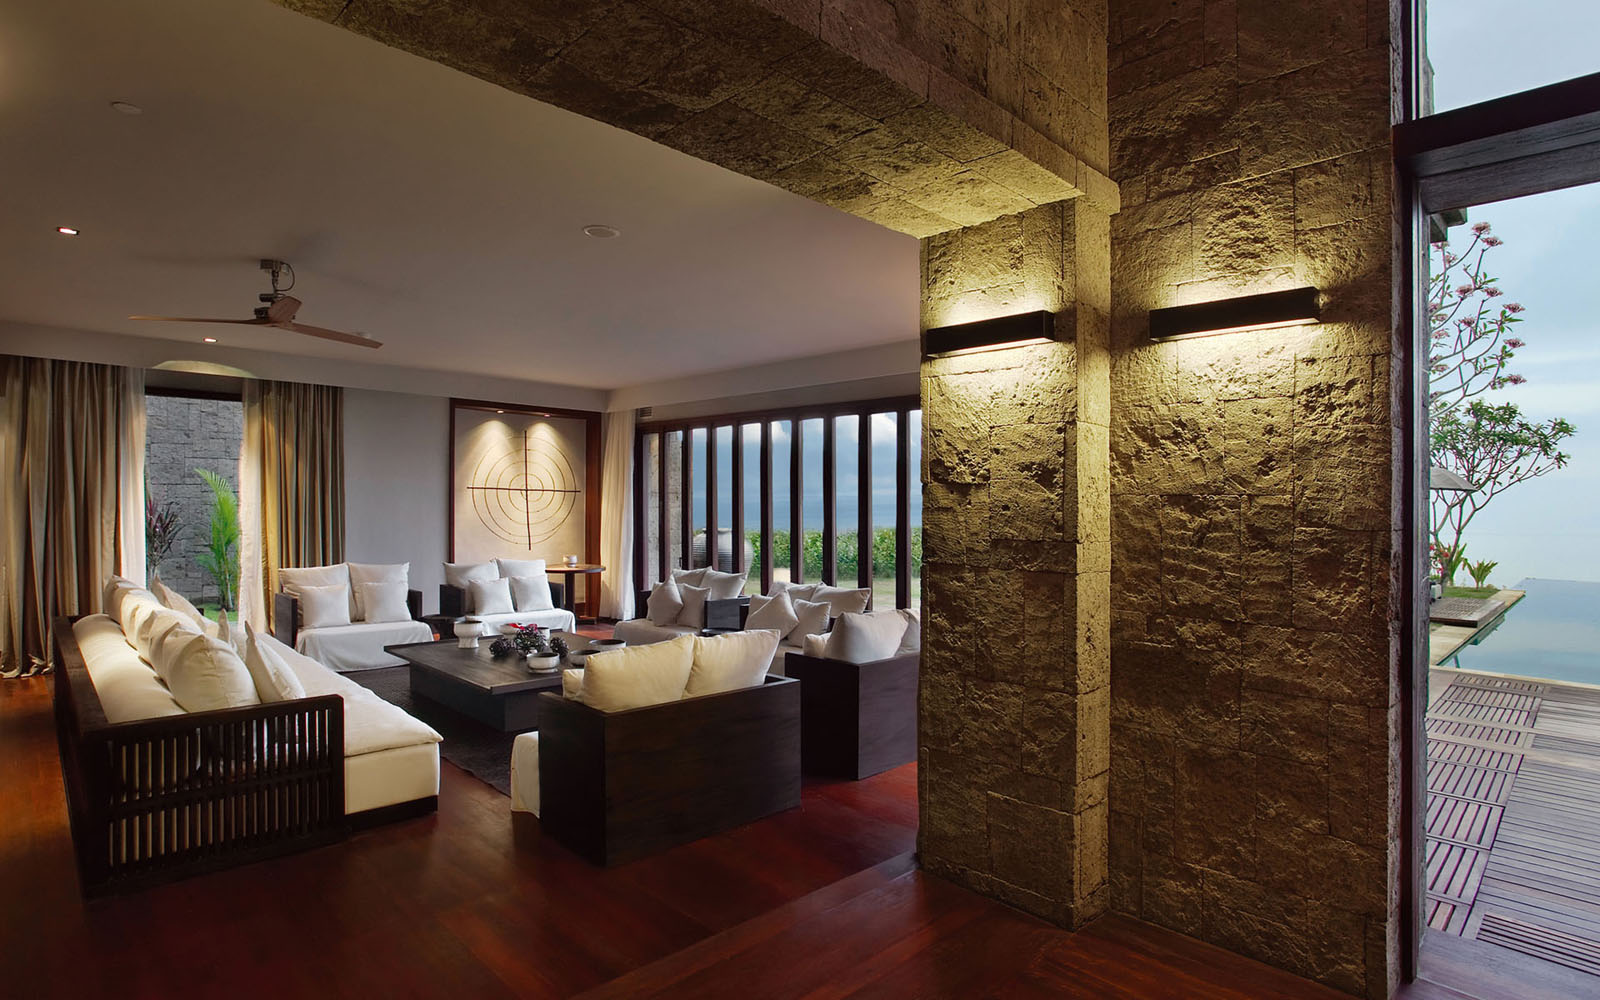 The bulgari villa bali 6 idesignarch interior design for Interior designs villas